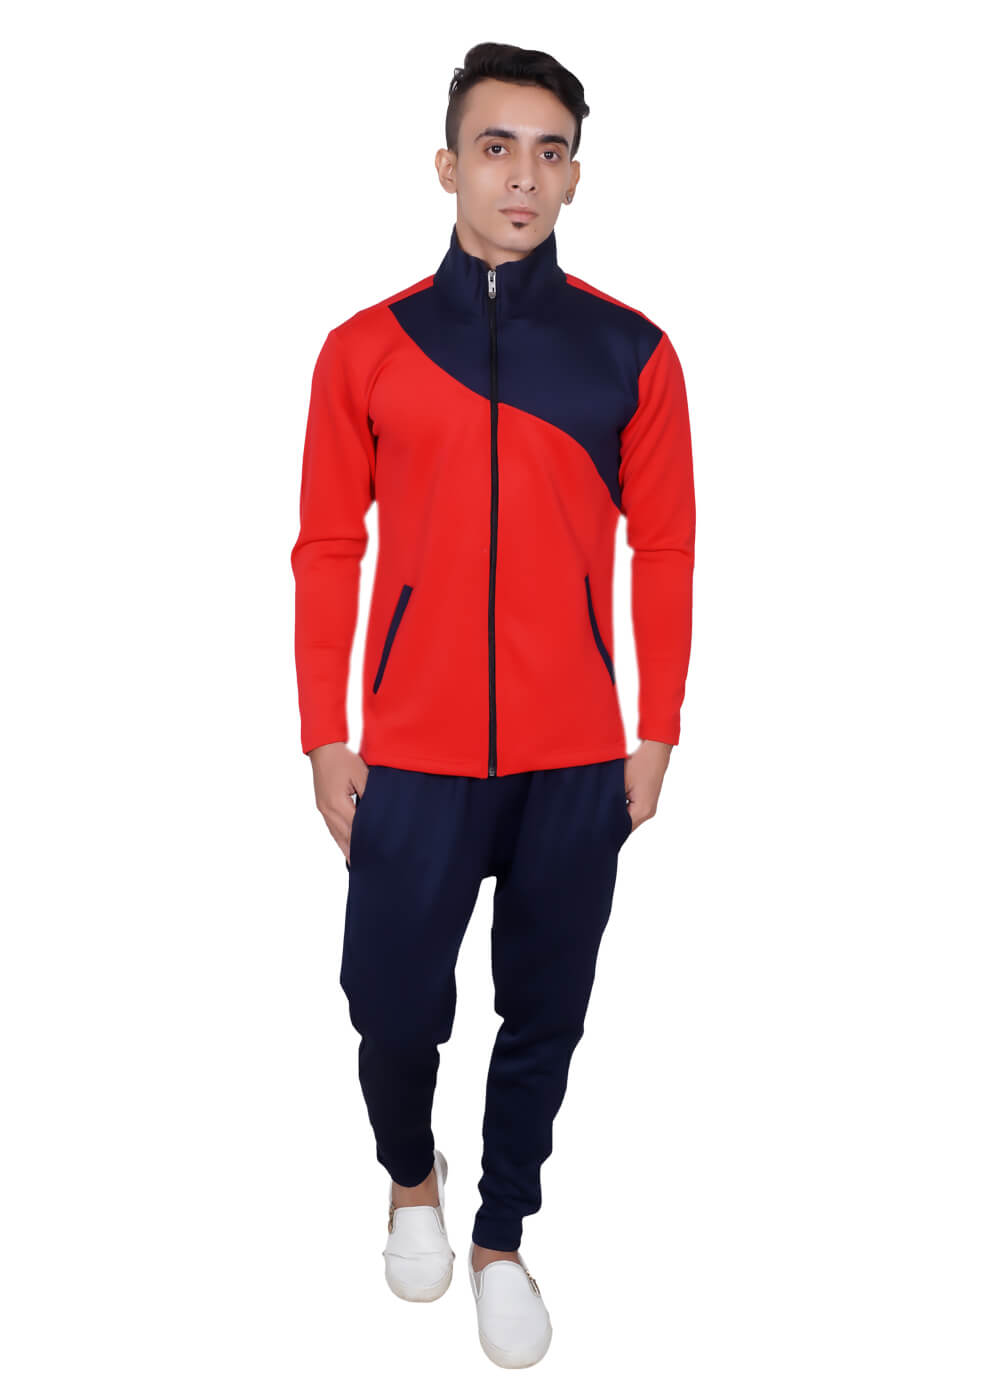 Cheap Tracksuits Manufacturers in Rajkot